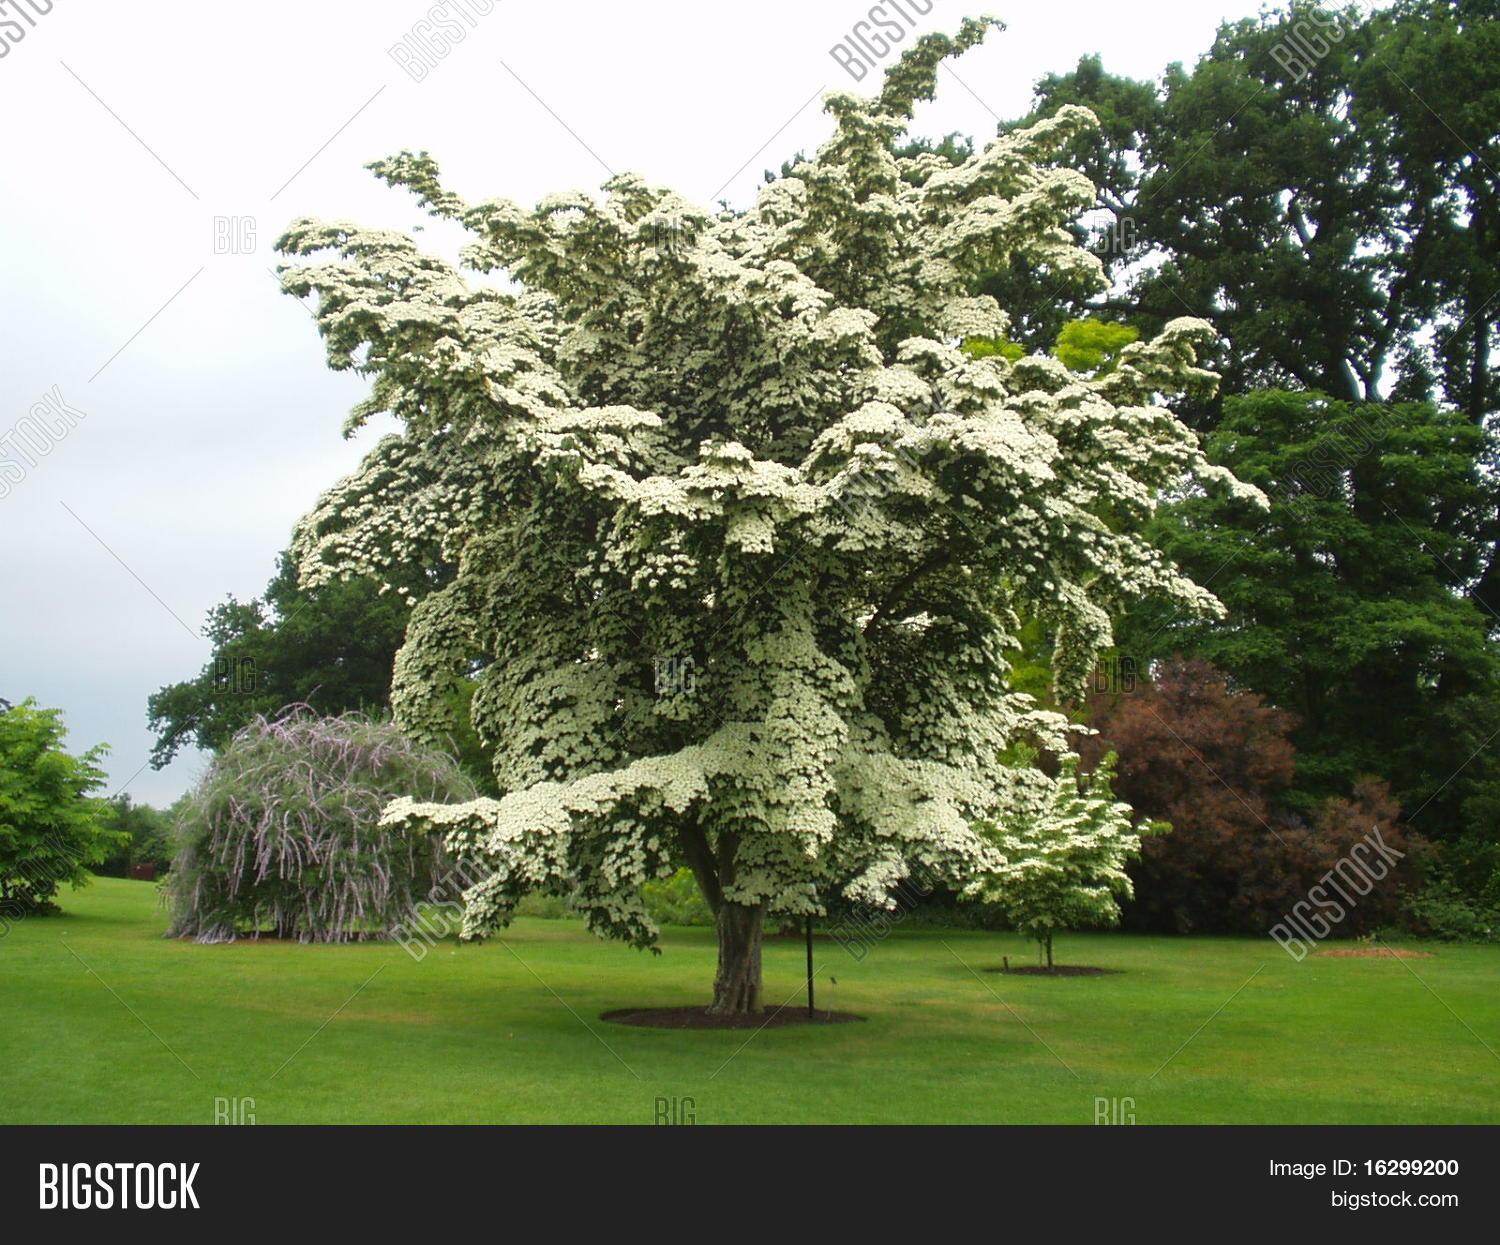 cornus kousa chinensis flower rhs image photo bigstock. Black Bedroom Furniture Sets. Home Design Ideas